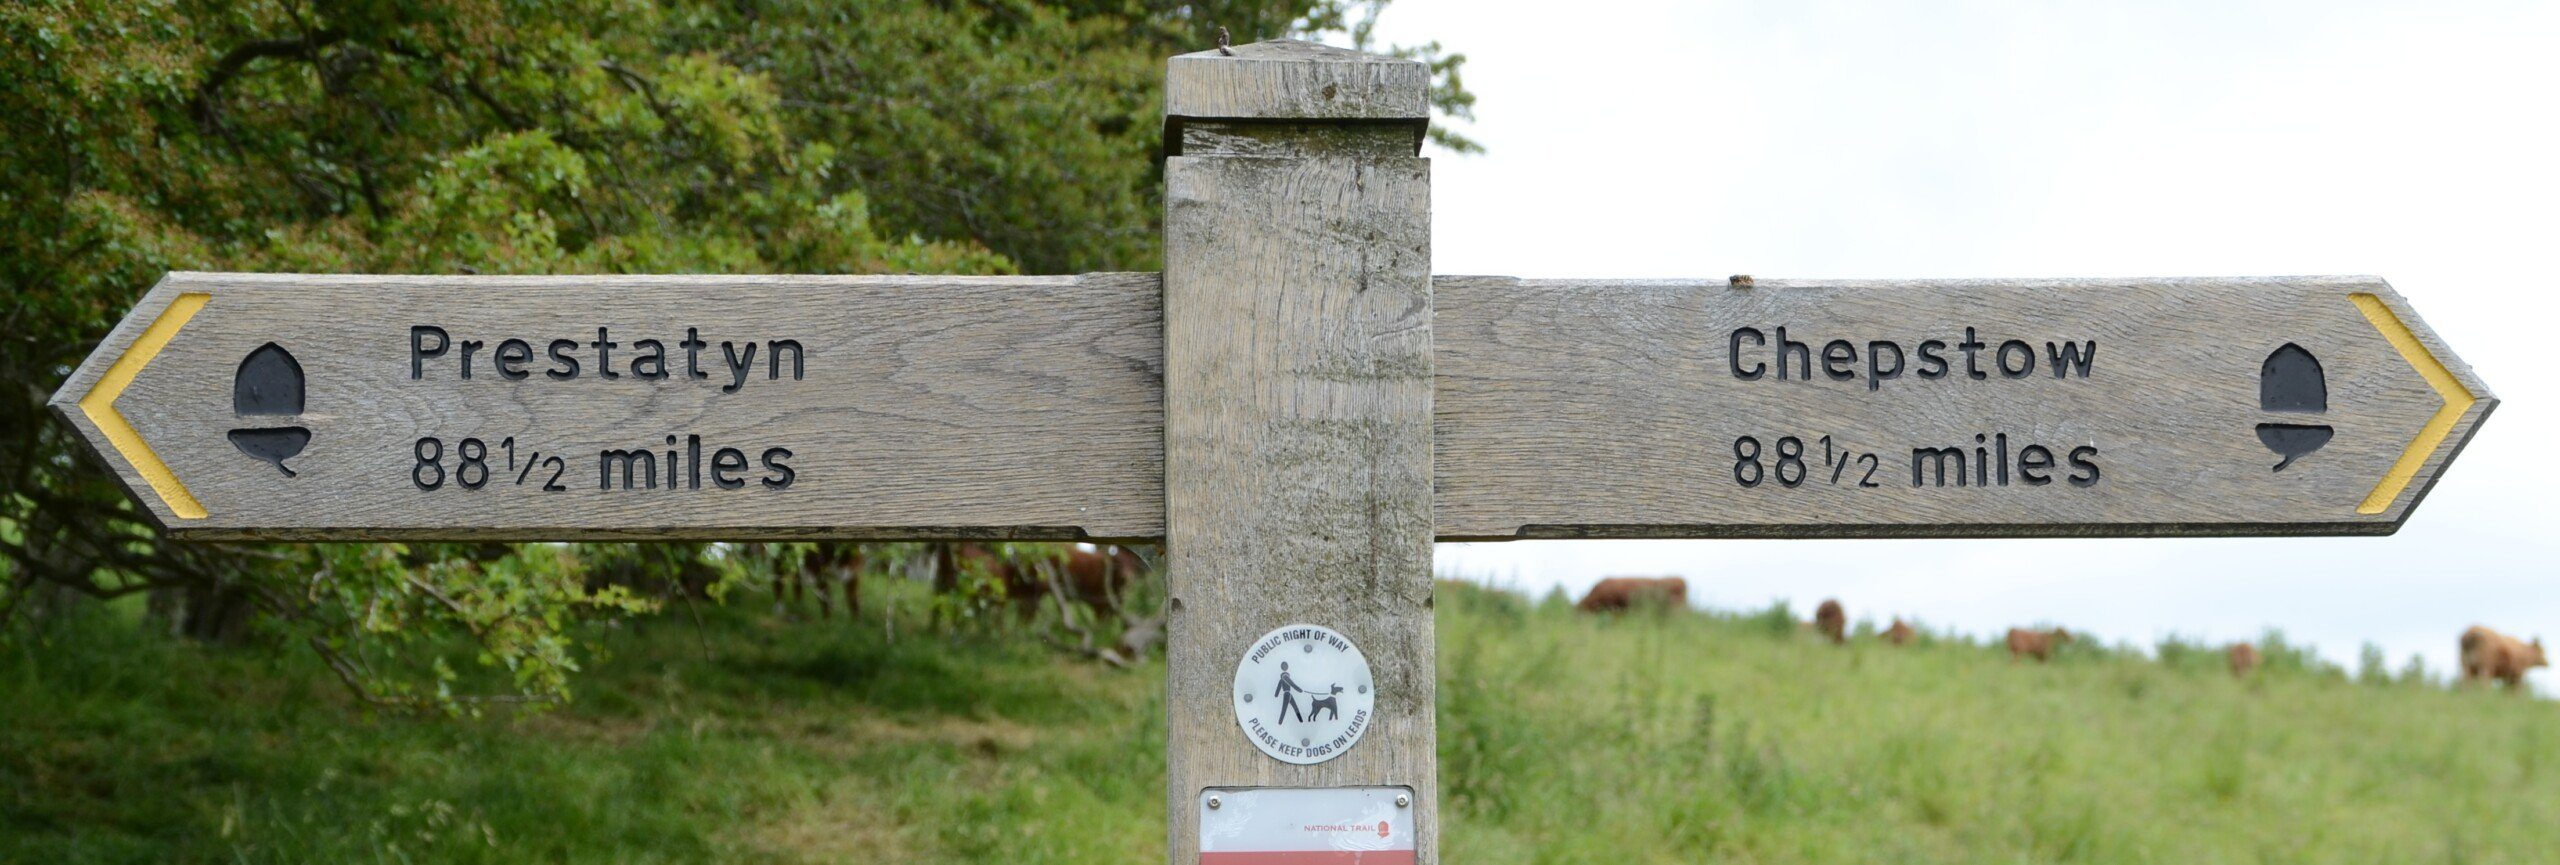 Offa's Way signpost, with Prestatyn and Chepstow both 88.5 miles away